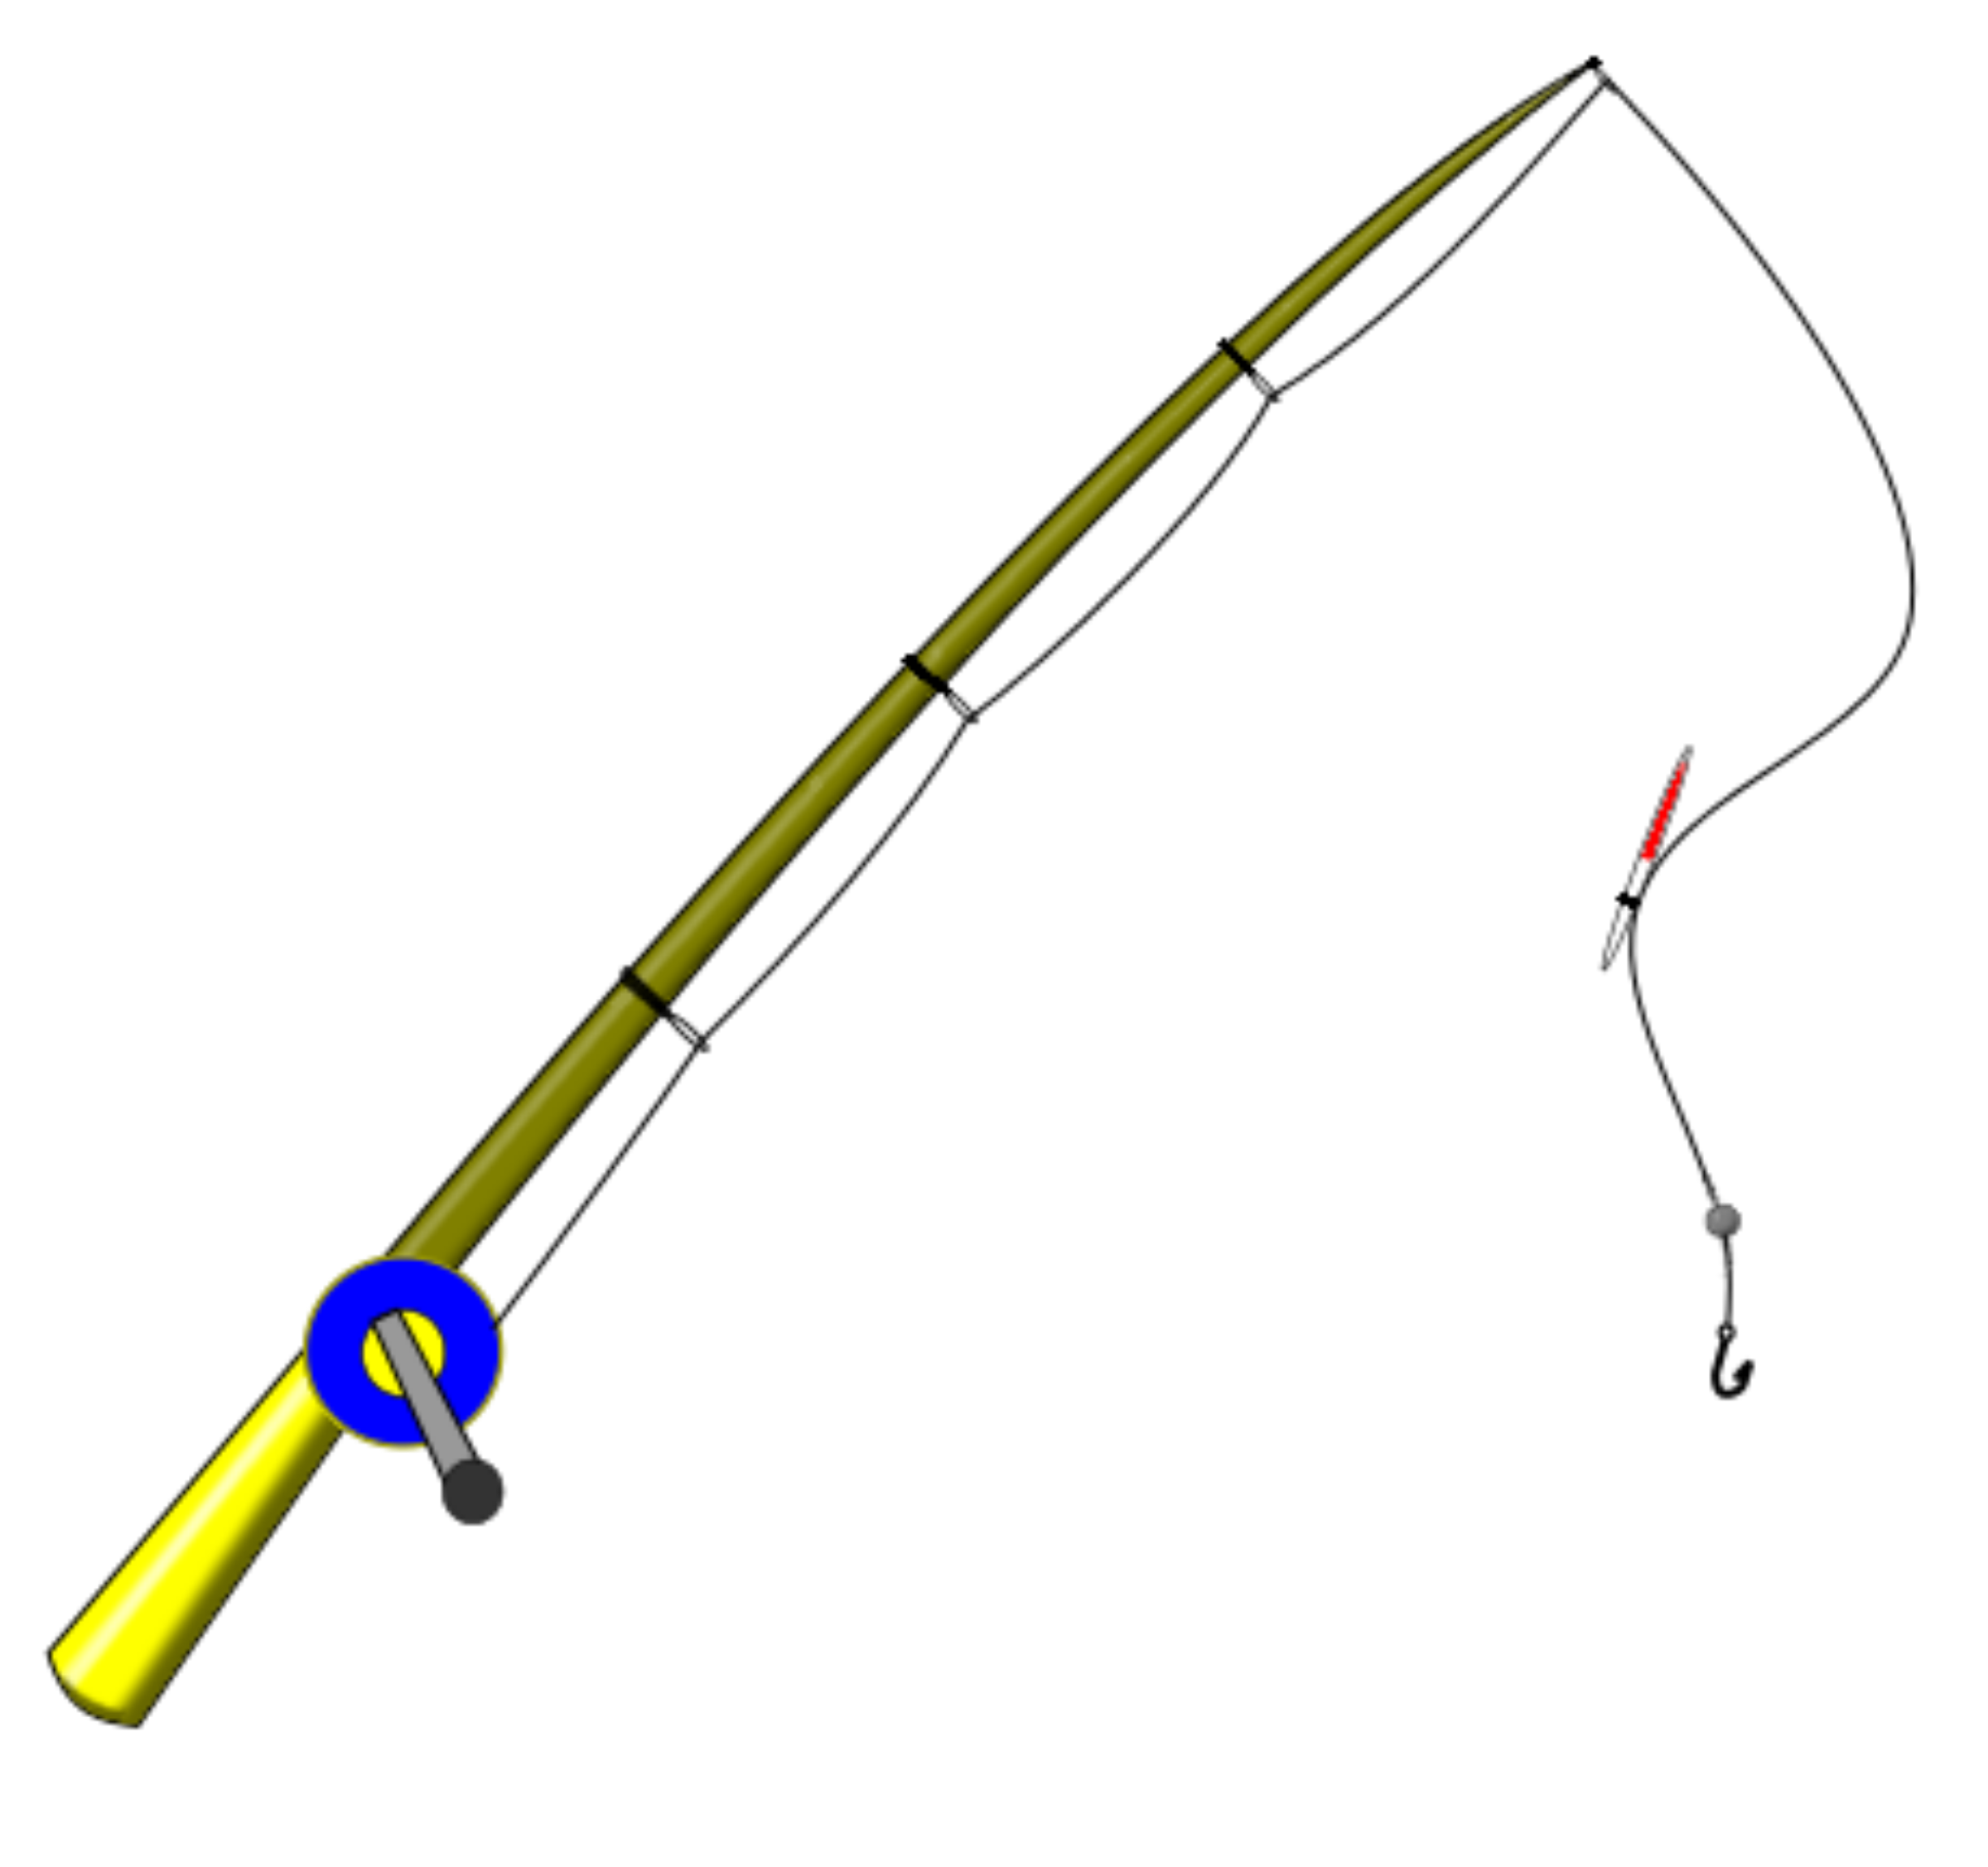 Fishing pole clipart - Clipground